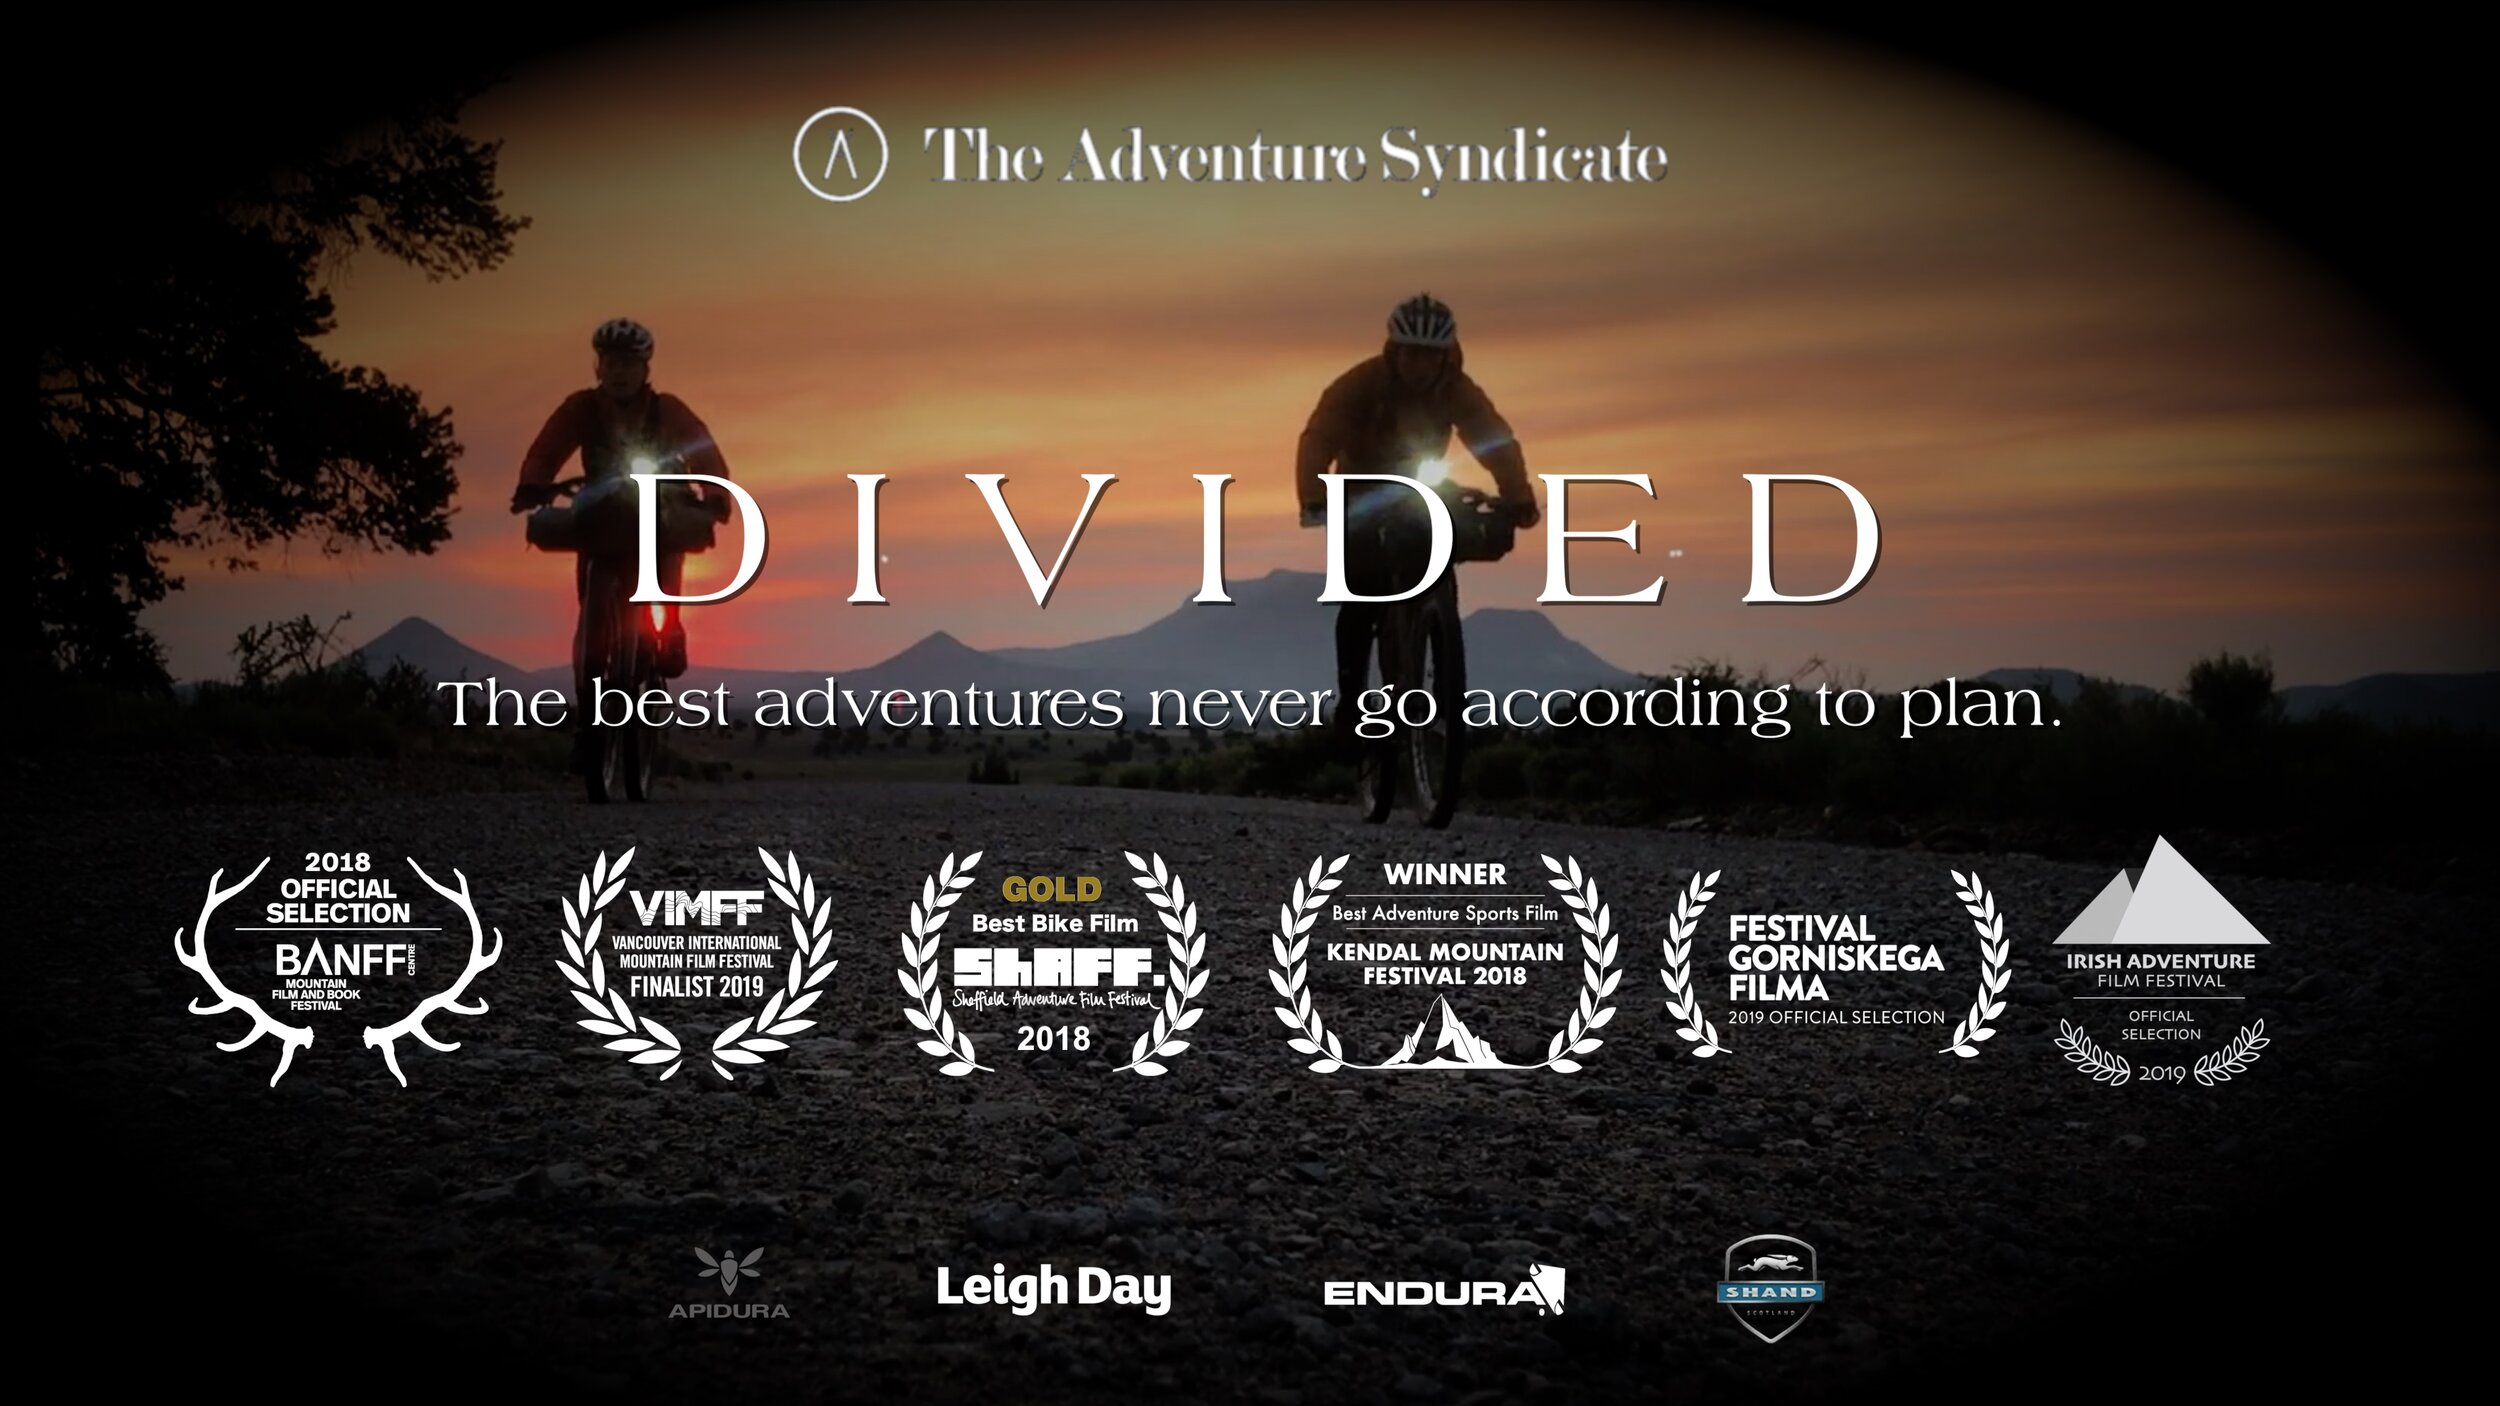 Watch our Banff Film Festival nominated film Divided on demand on Vimeo. NOW!